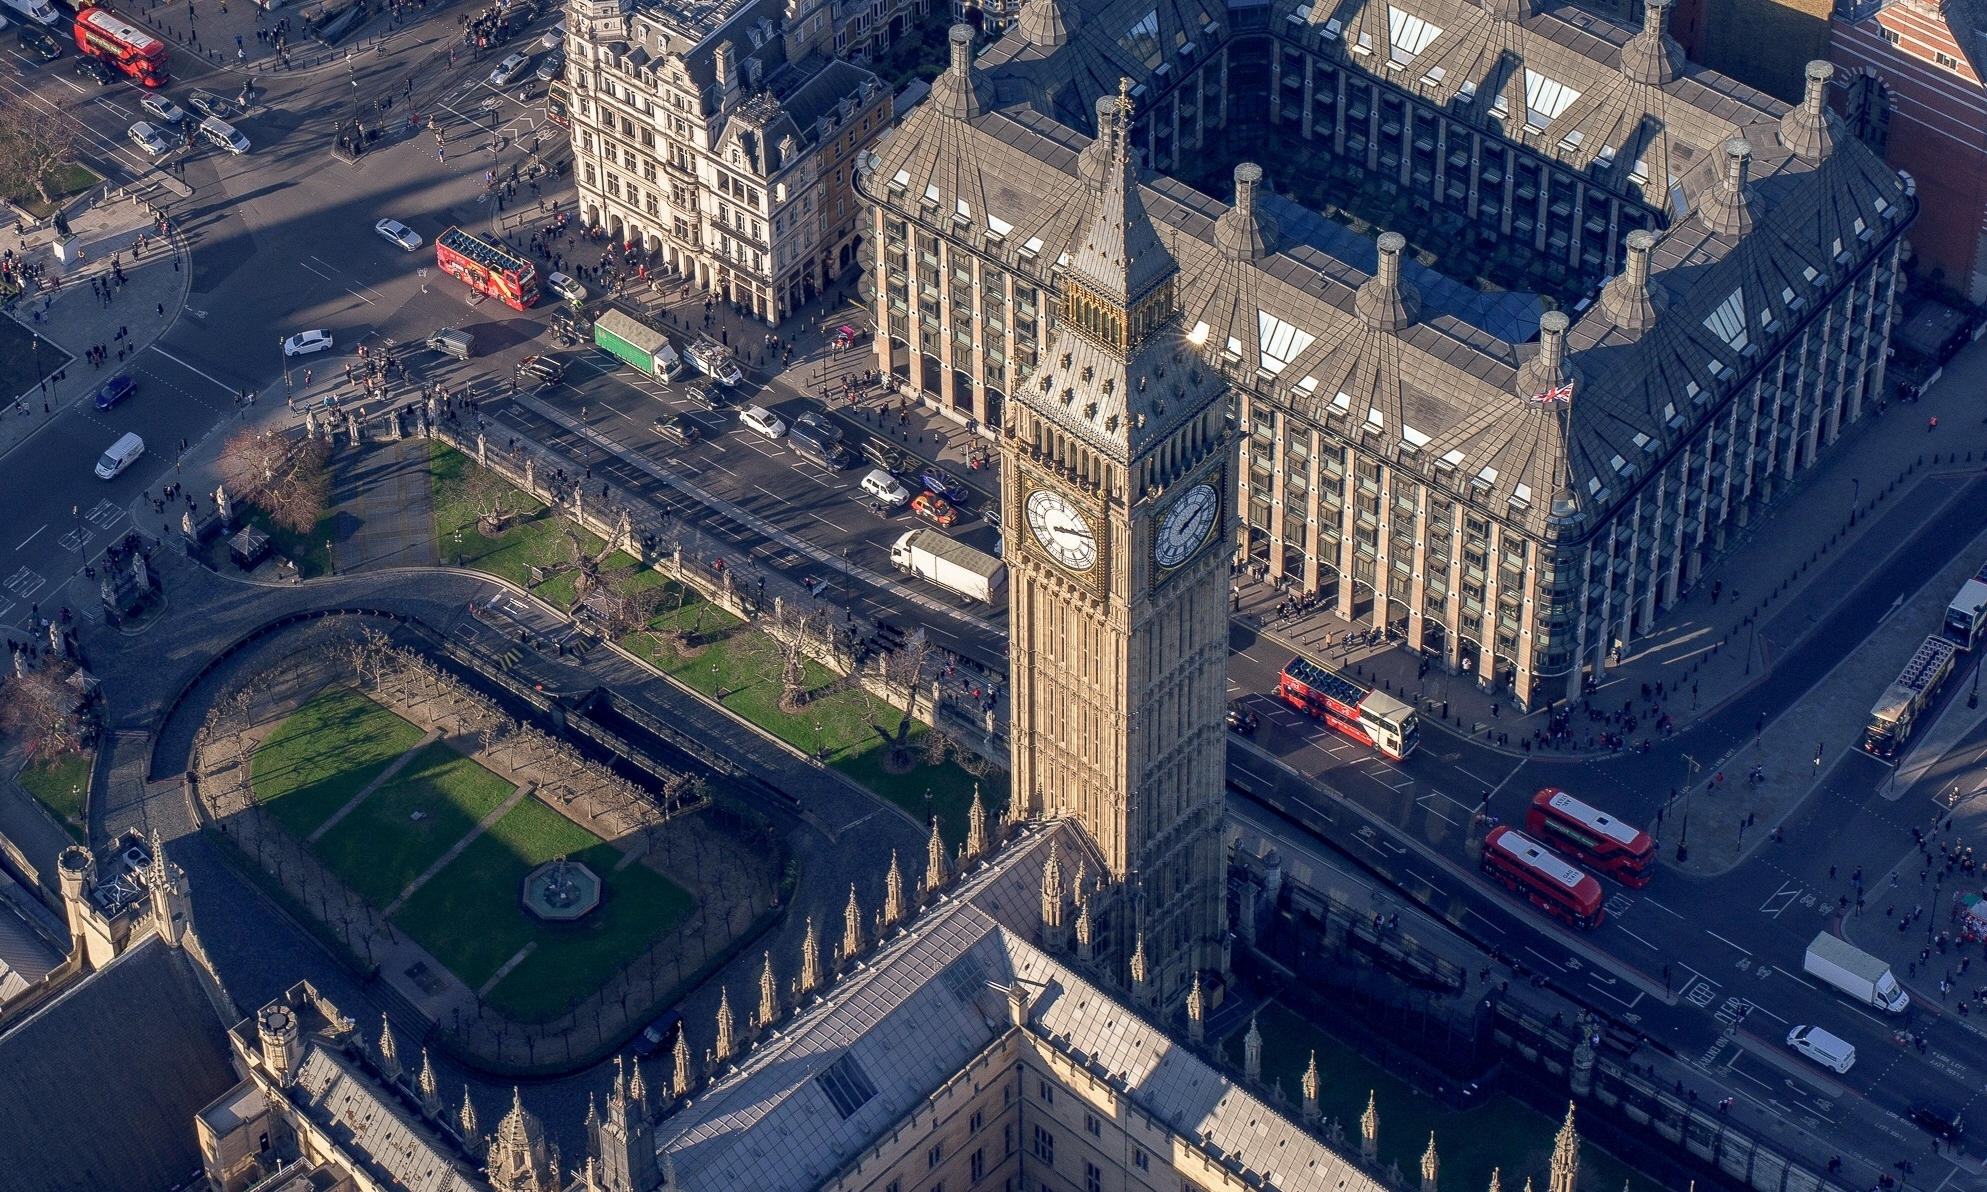 Big Ben Aerial View from Helicopter